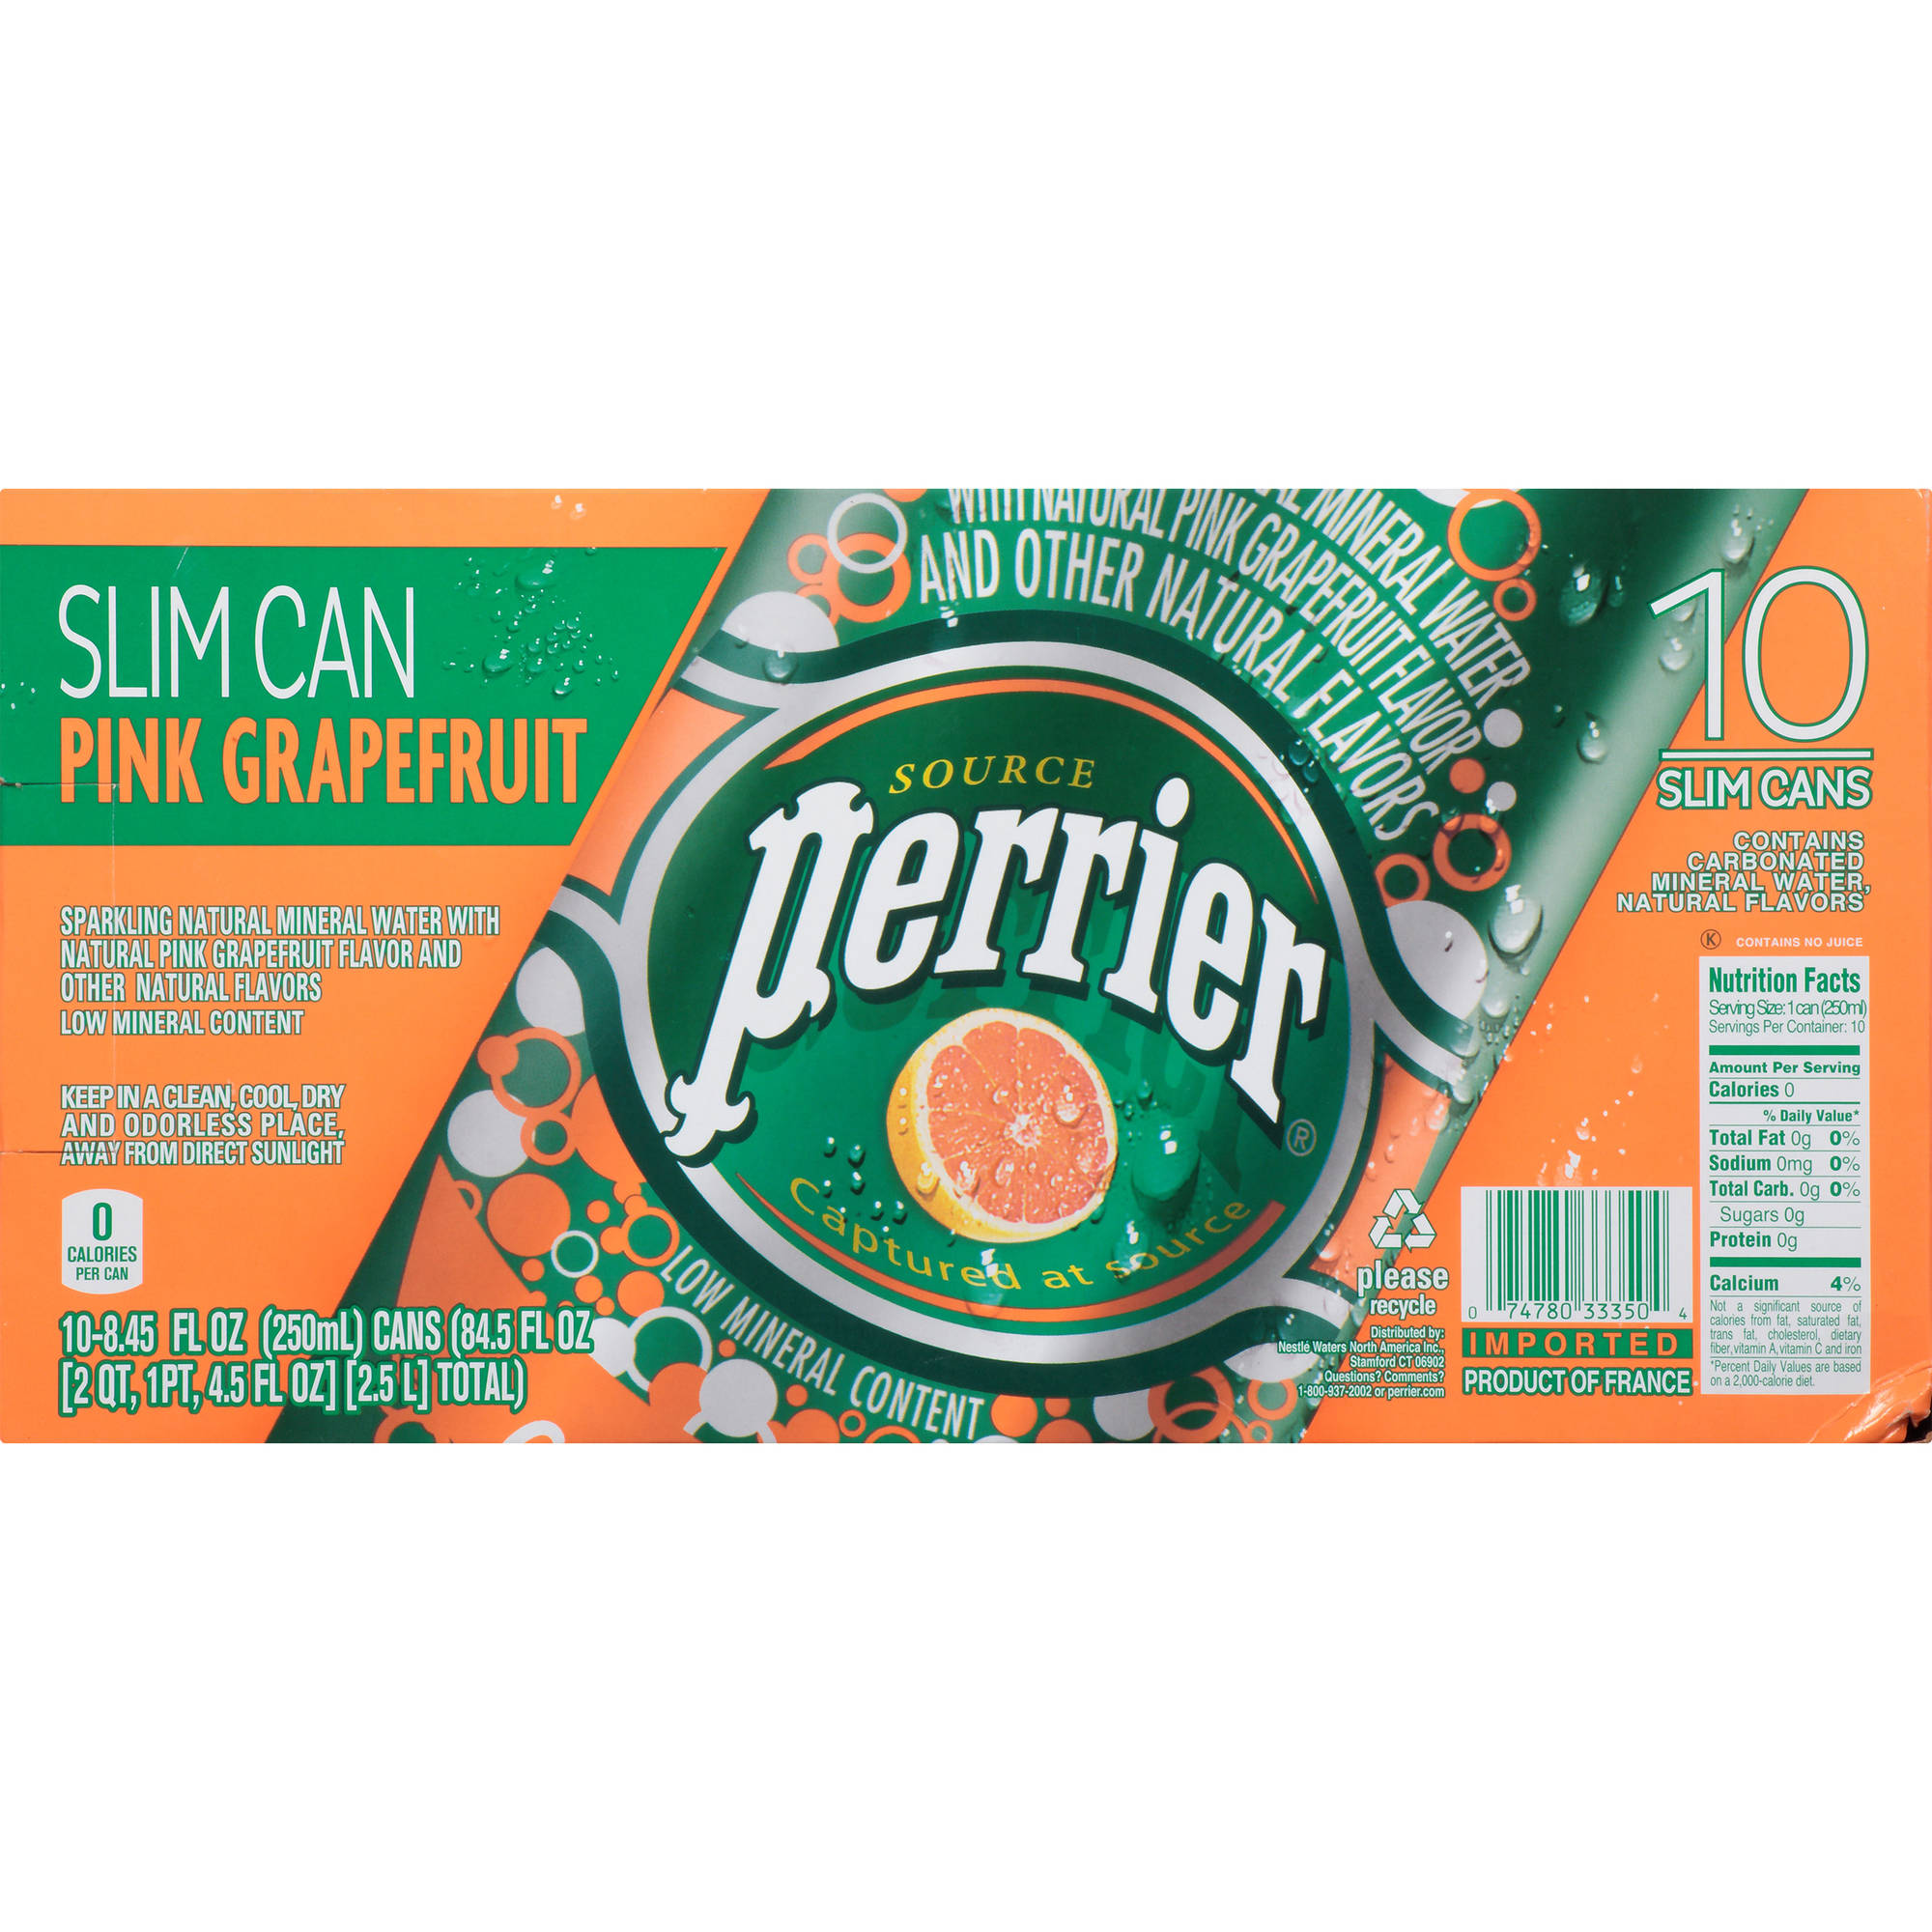 Perrier Sparkling Natural Mineral Water, Pink Grapefruit, 8.4 Fl Oz, 10 Count